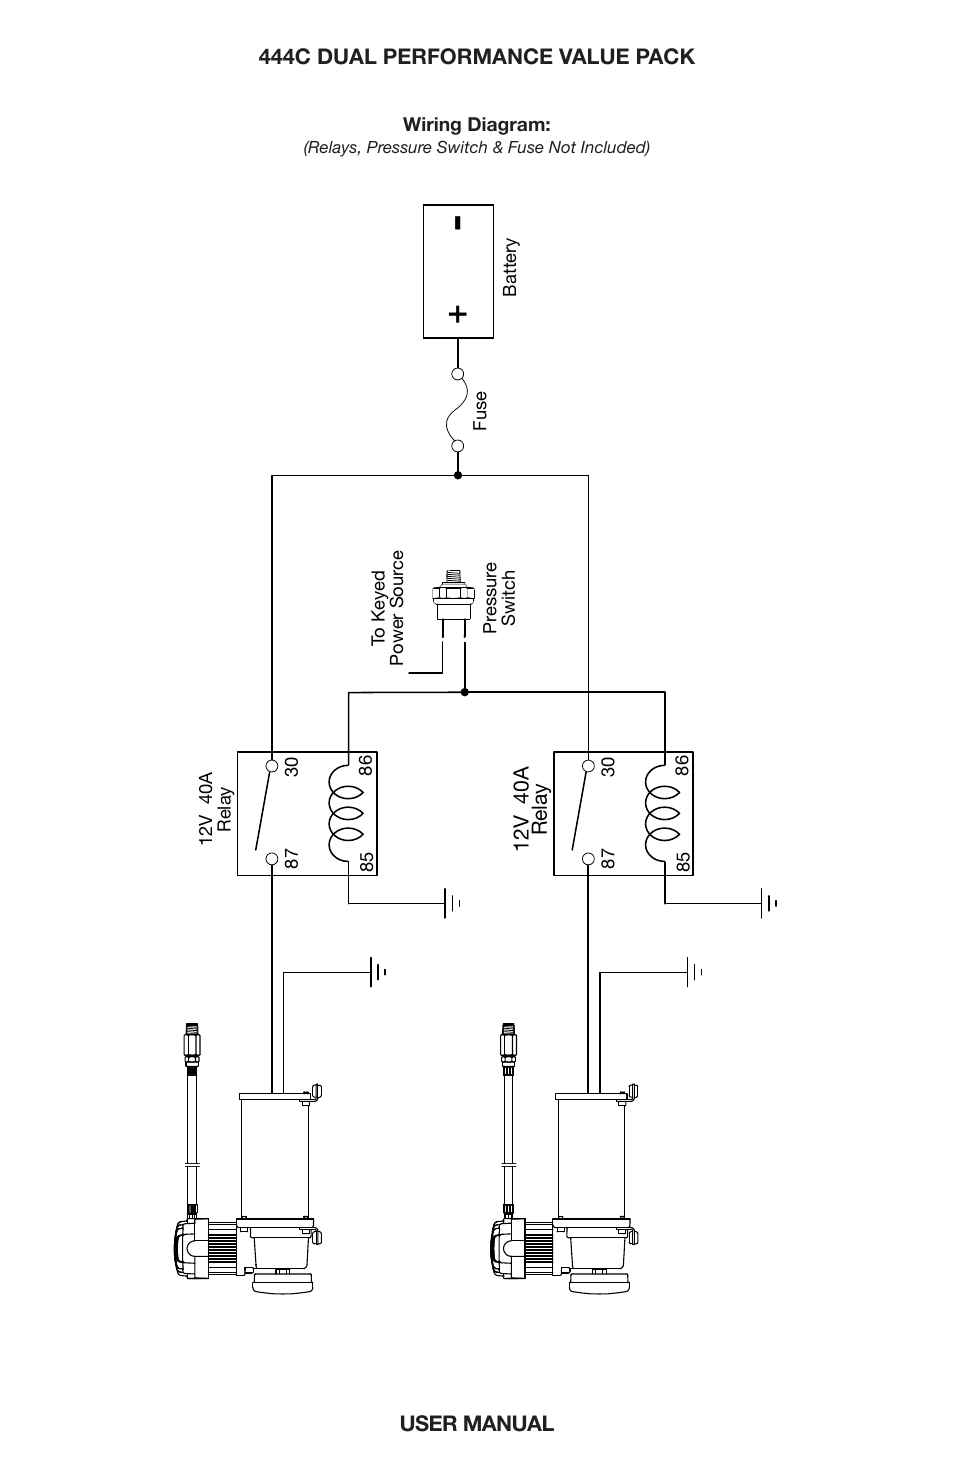 viair 444c dual page7 dual \u201cc\u201d model compressor wiring diagram viair 444c dual user viair 444c wiring diagram at reclaimingppi.co